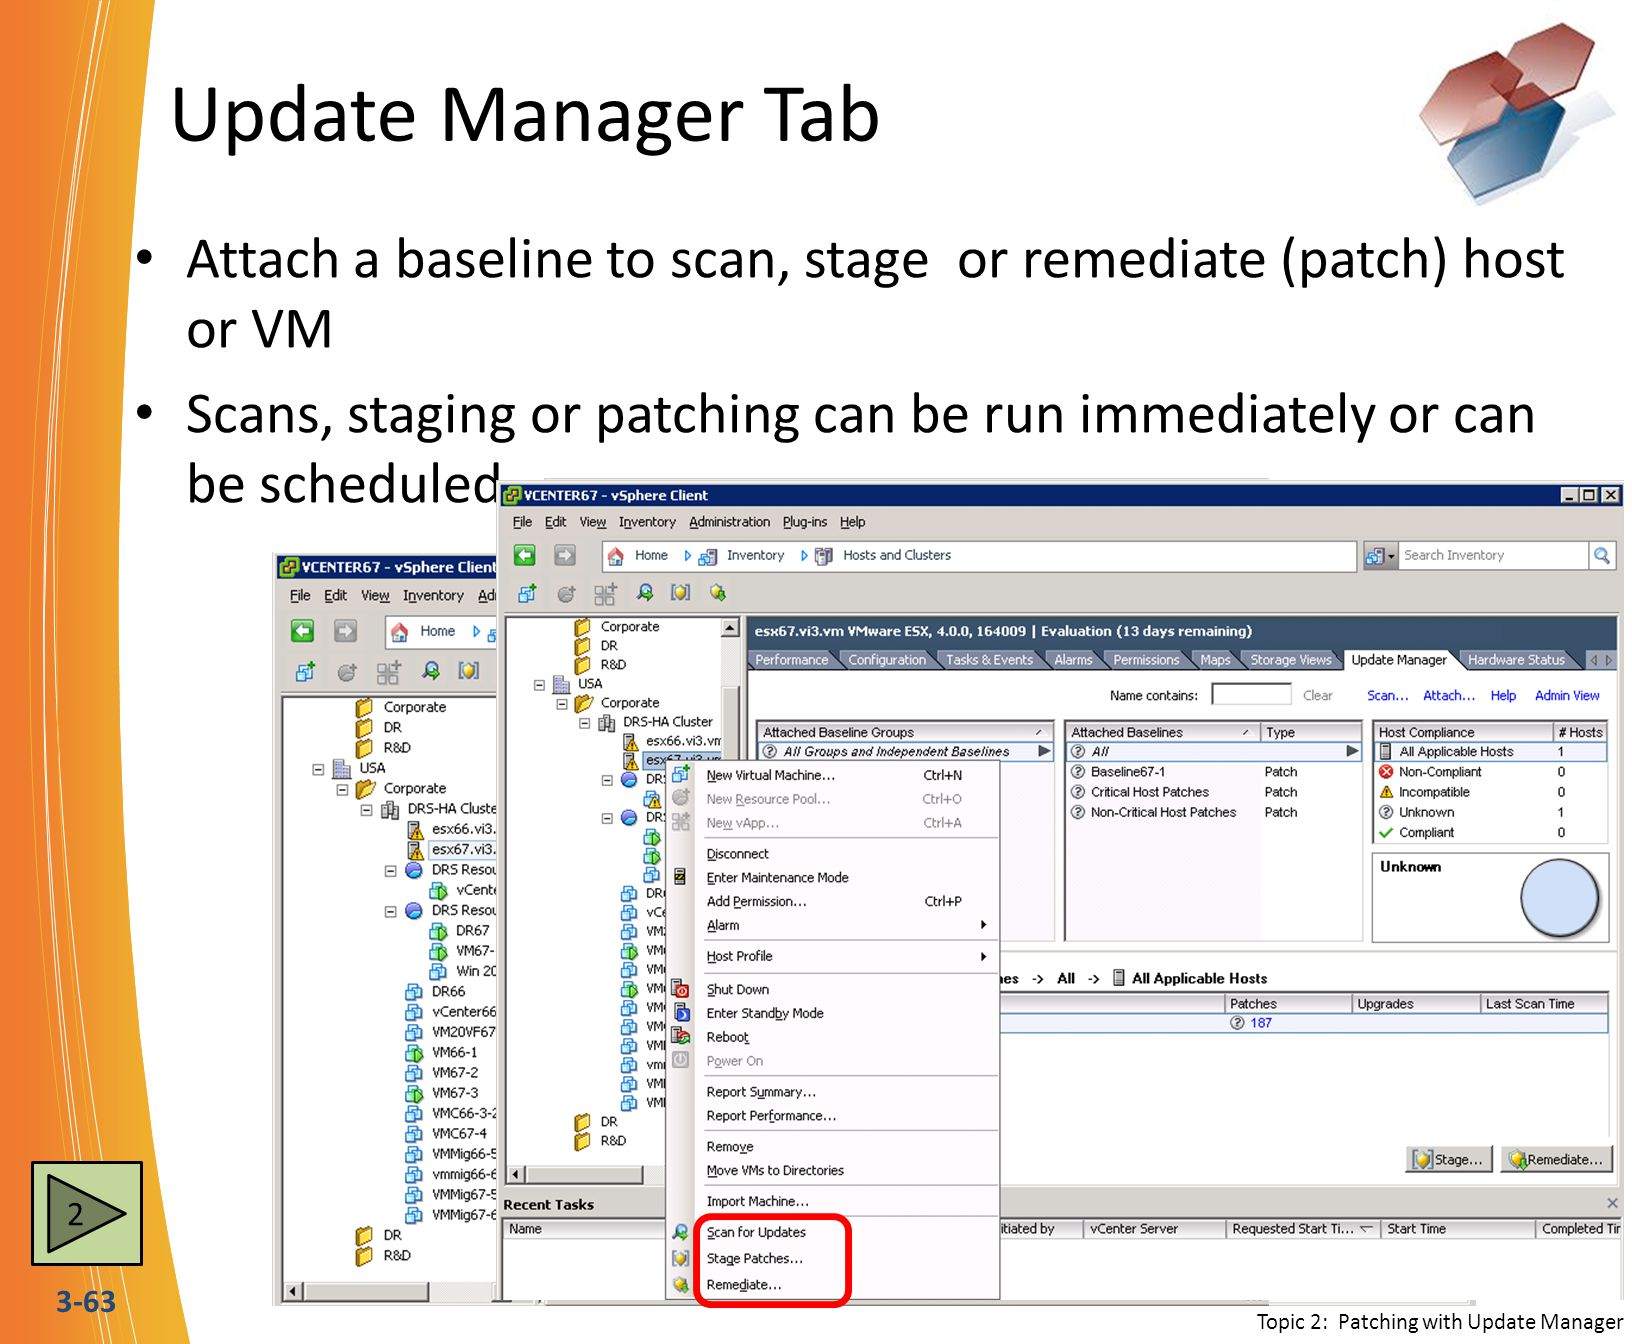 Update Manager Tab Attach a baseline to scan, stage or remediate (patch) host or VM.